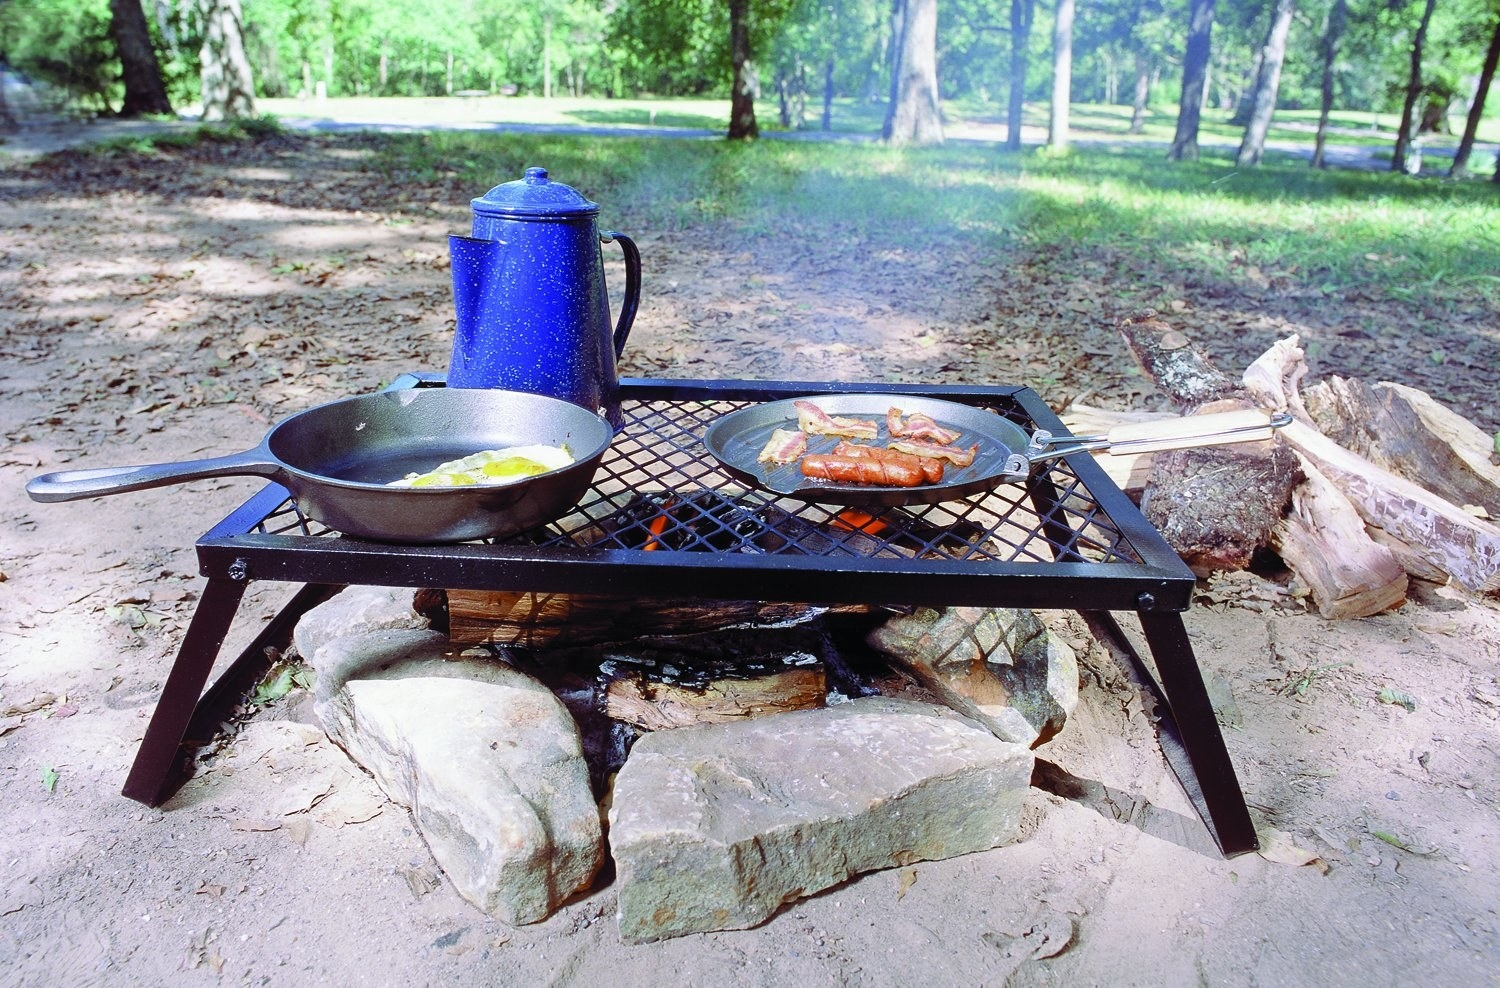 metal grate over campfire with two pans and a coffee percolator on top